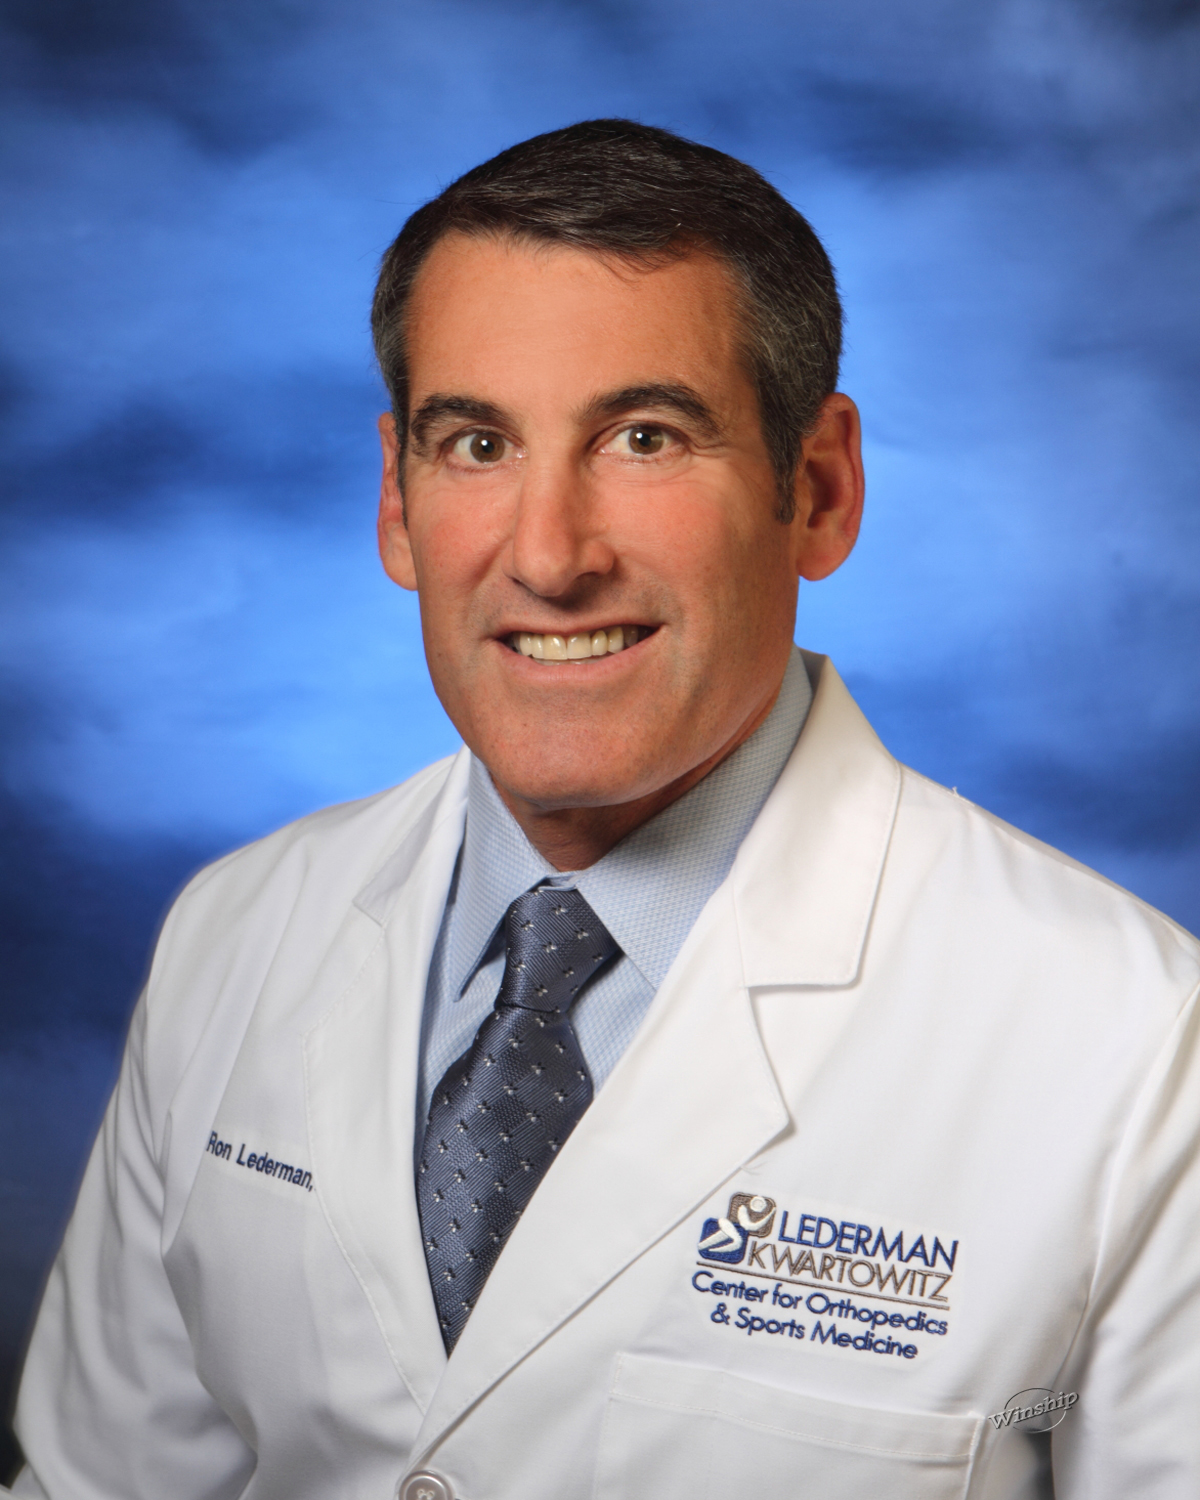 Ronald S Lederman, MD